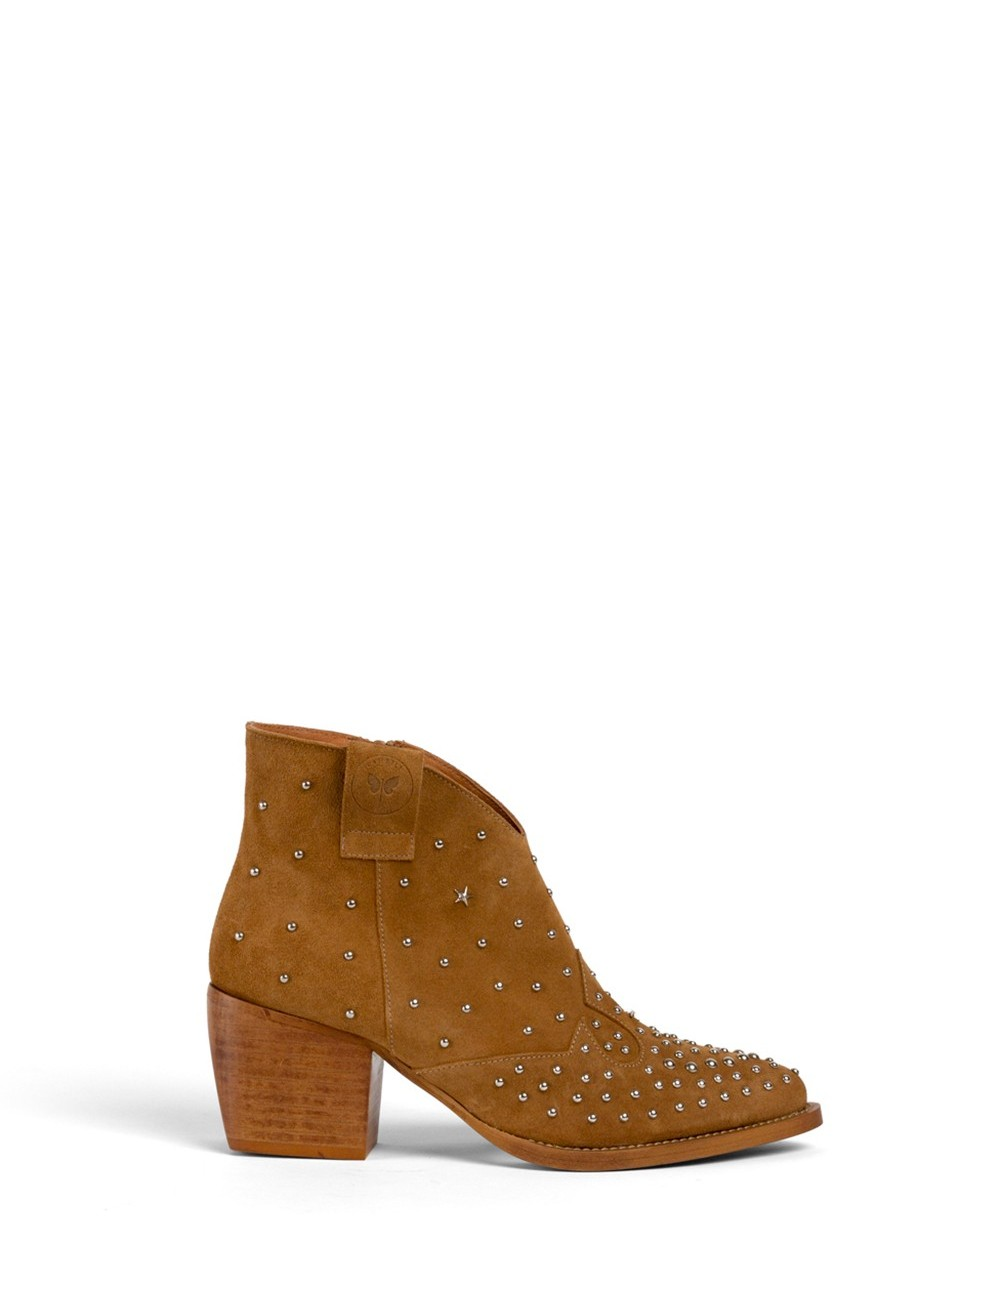 Molly heeled ankle boots